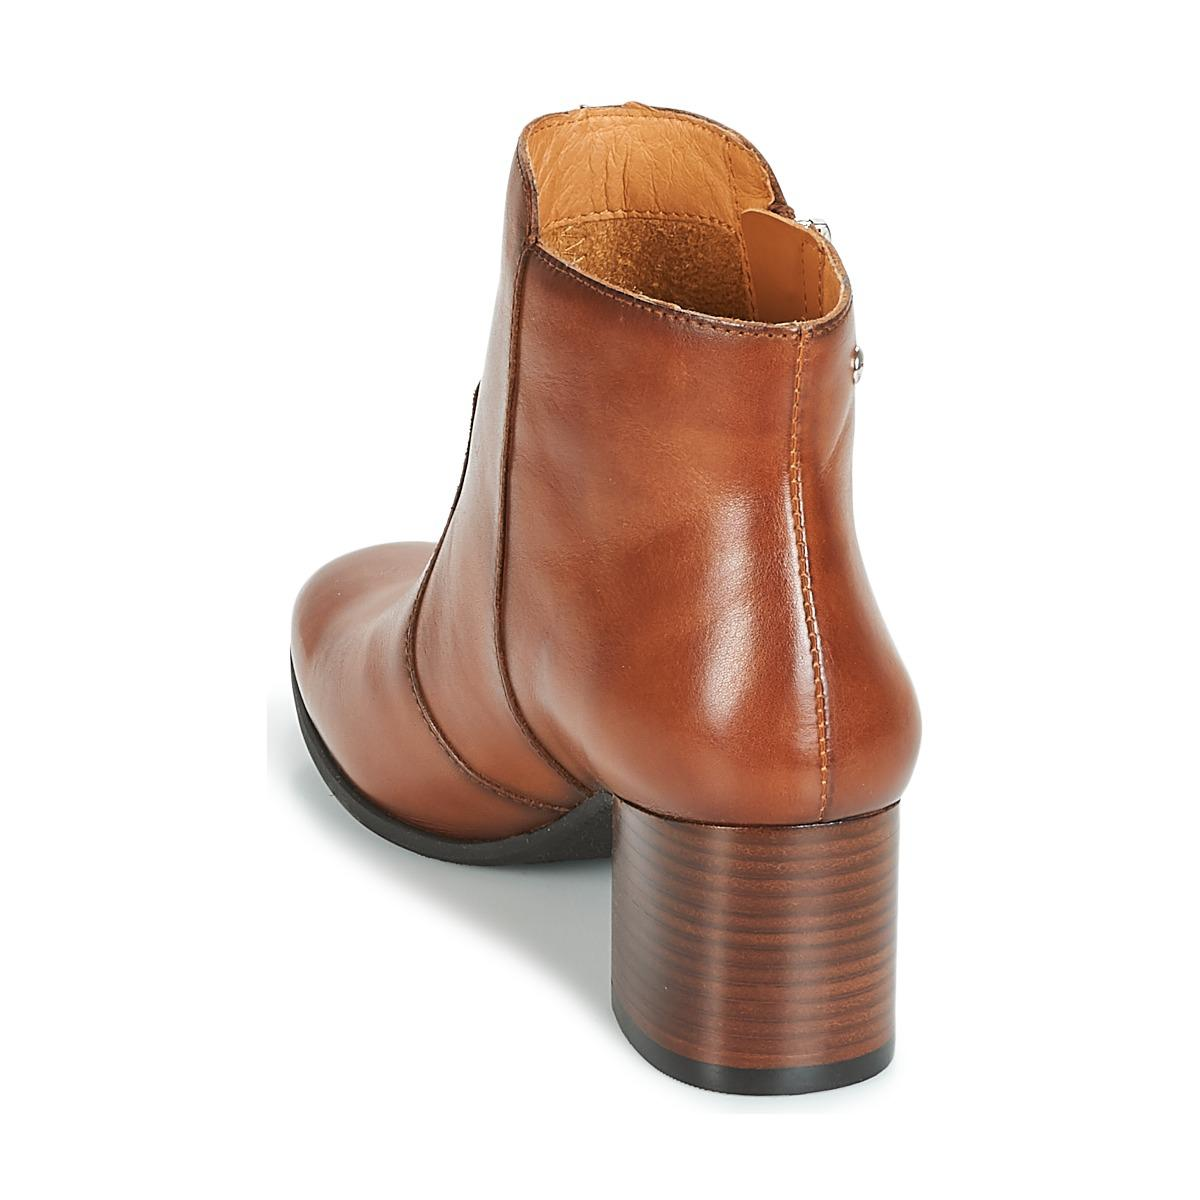 Pikolinos Bayona W8t Low Ankle Boots in Brown